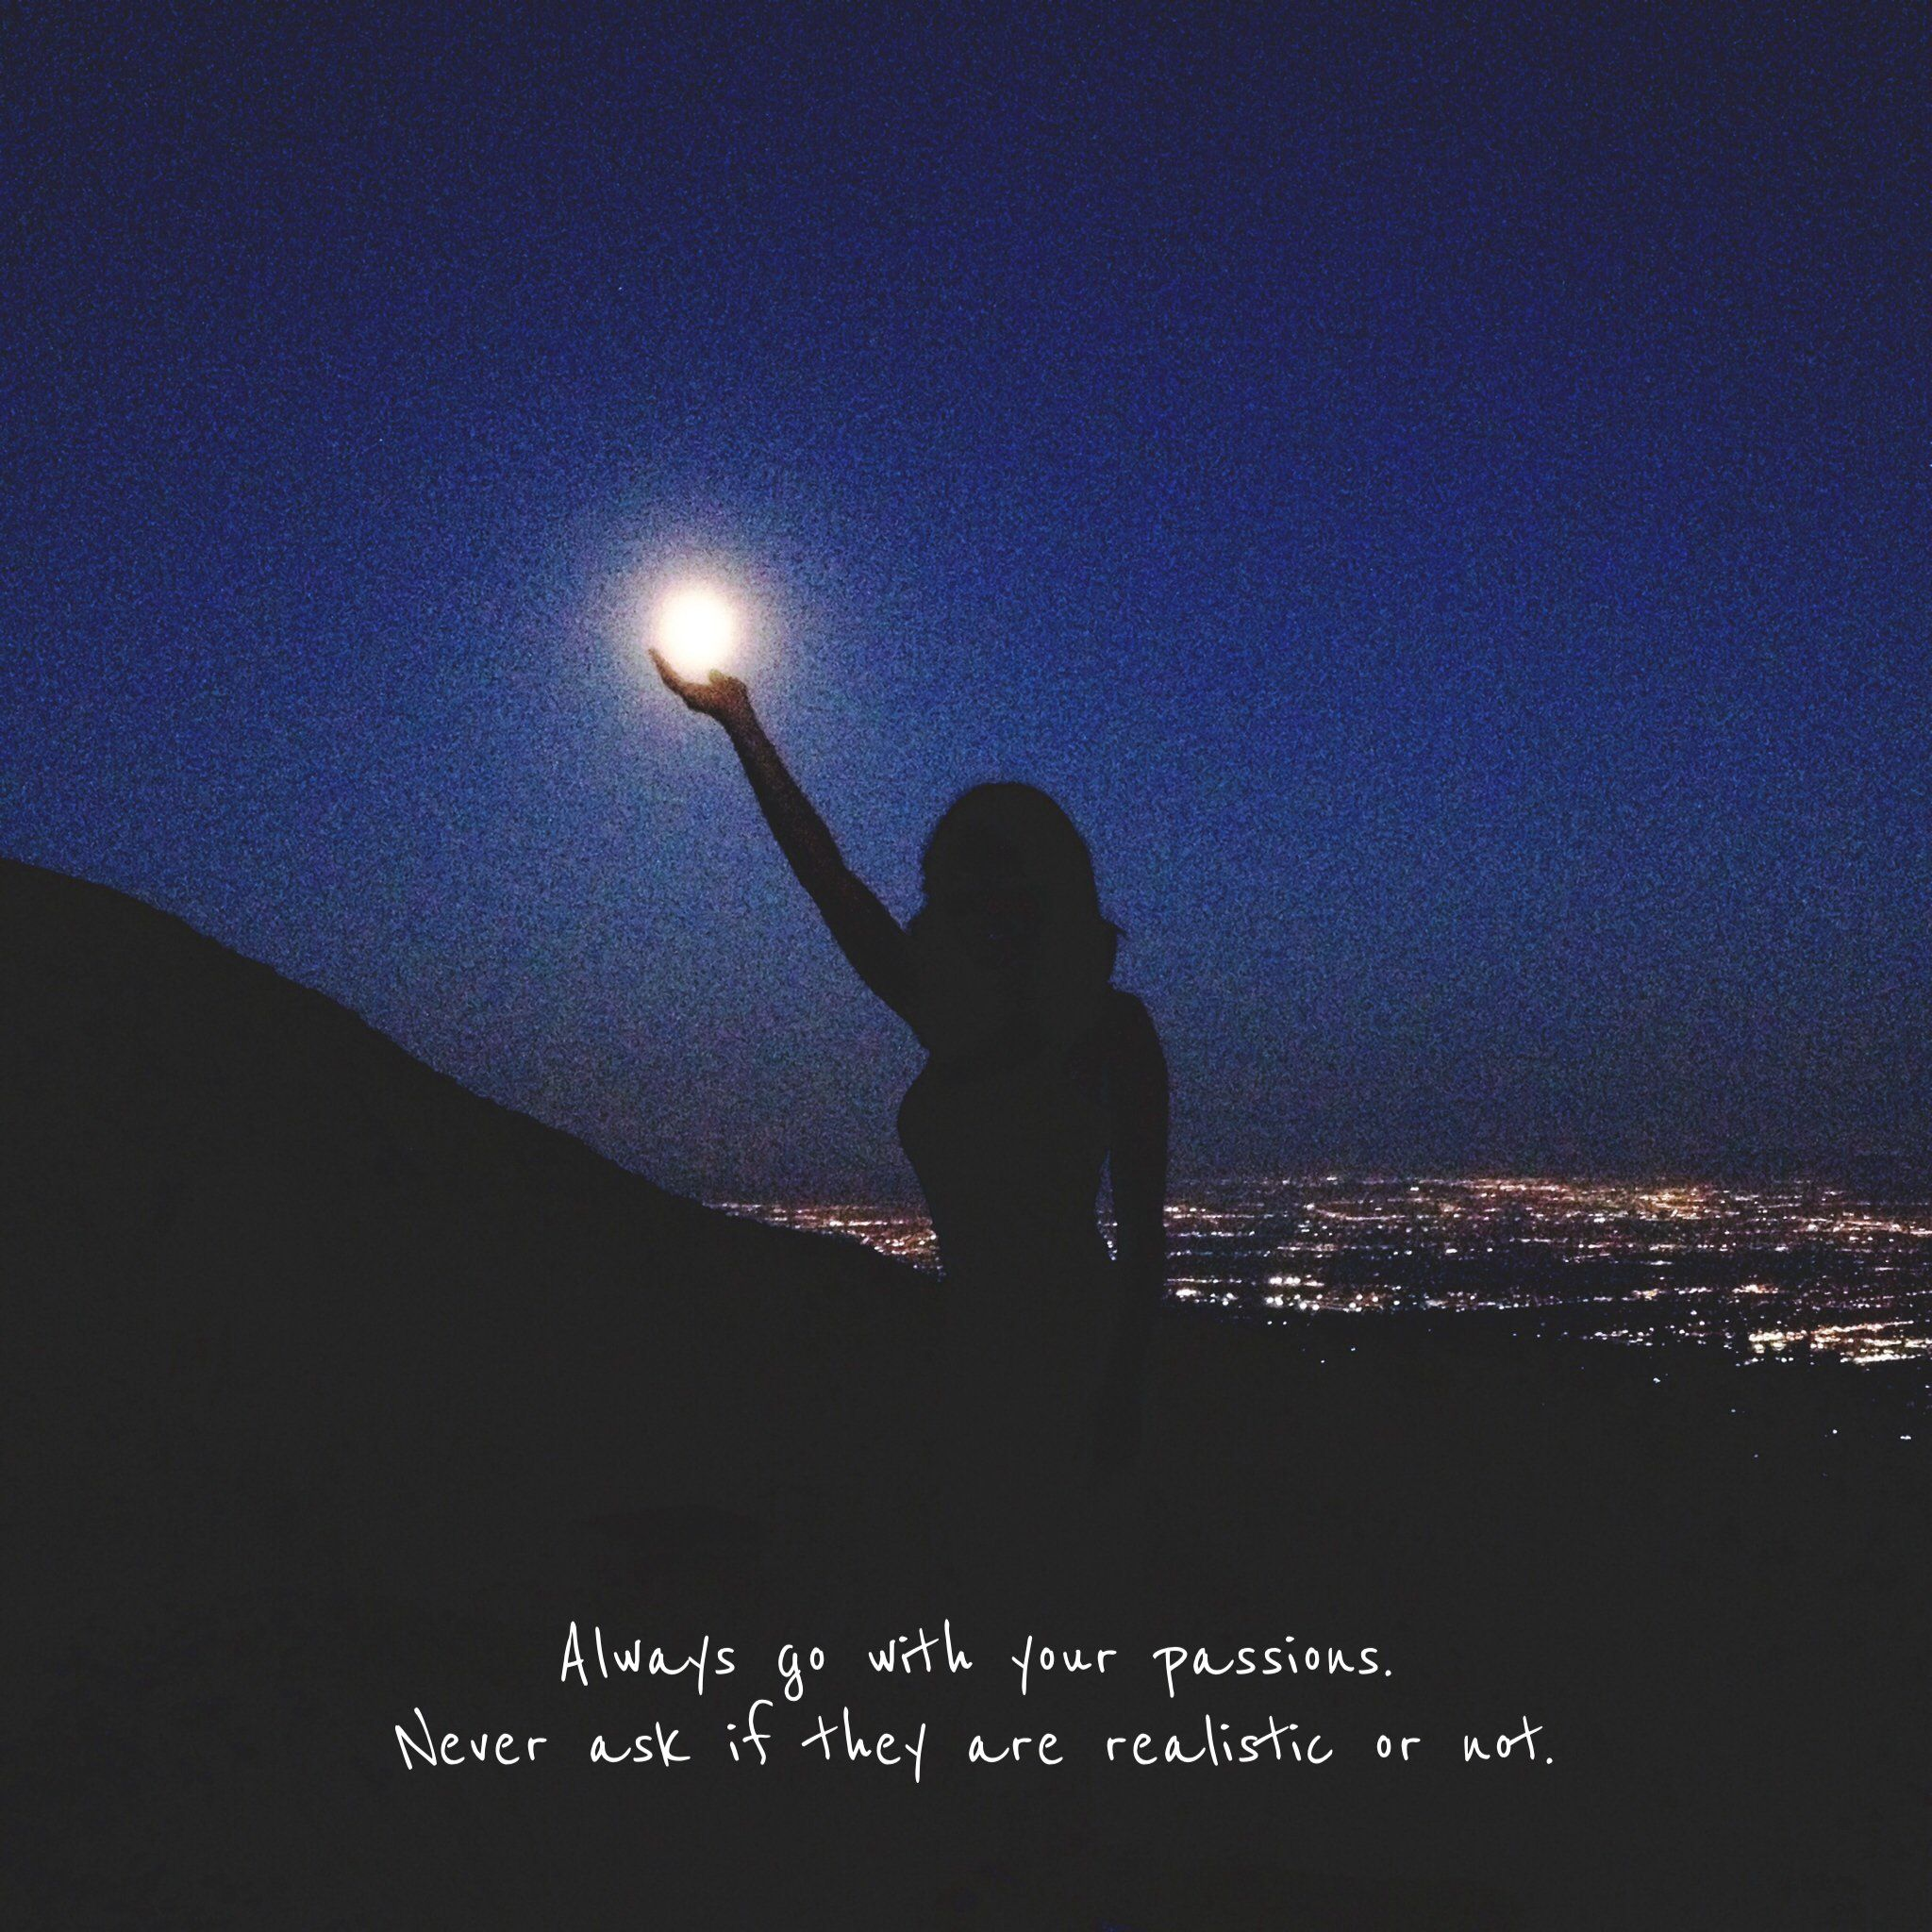 Tumblr Moon Quotes Google Search Moon Quotes Moon And Sun Quotes Moon And Star Quotes